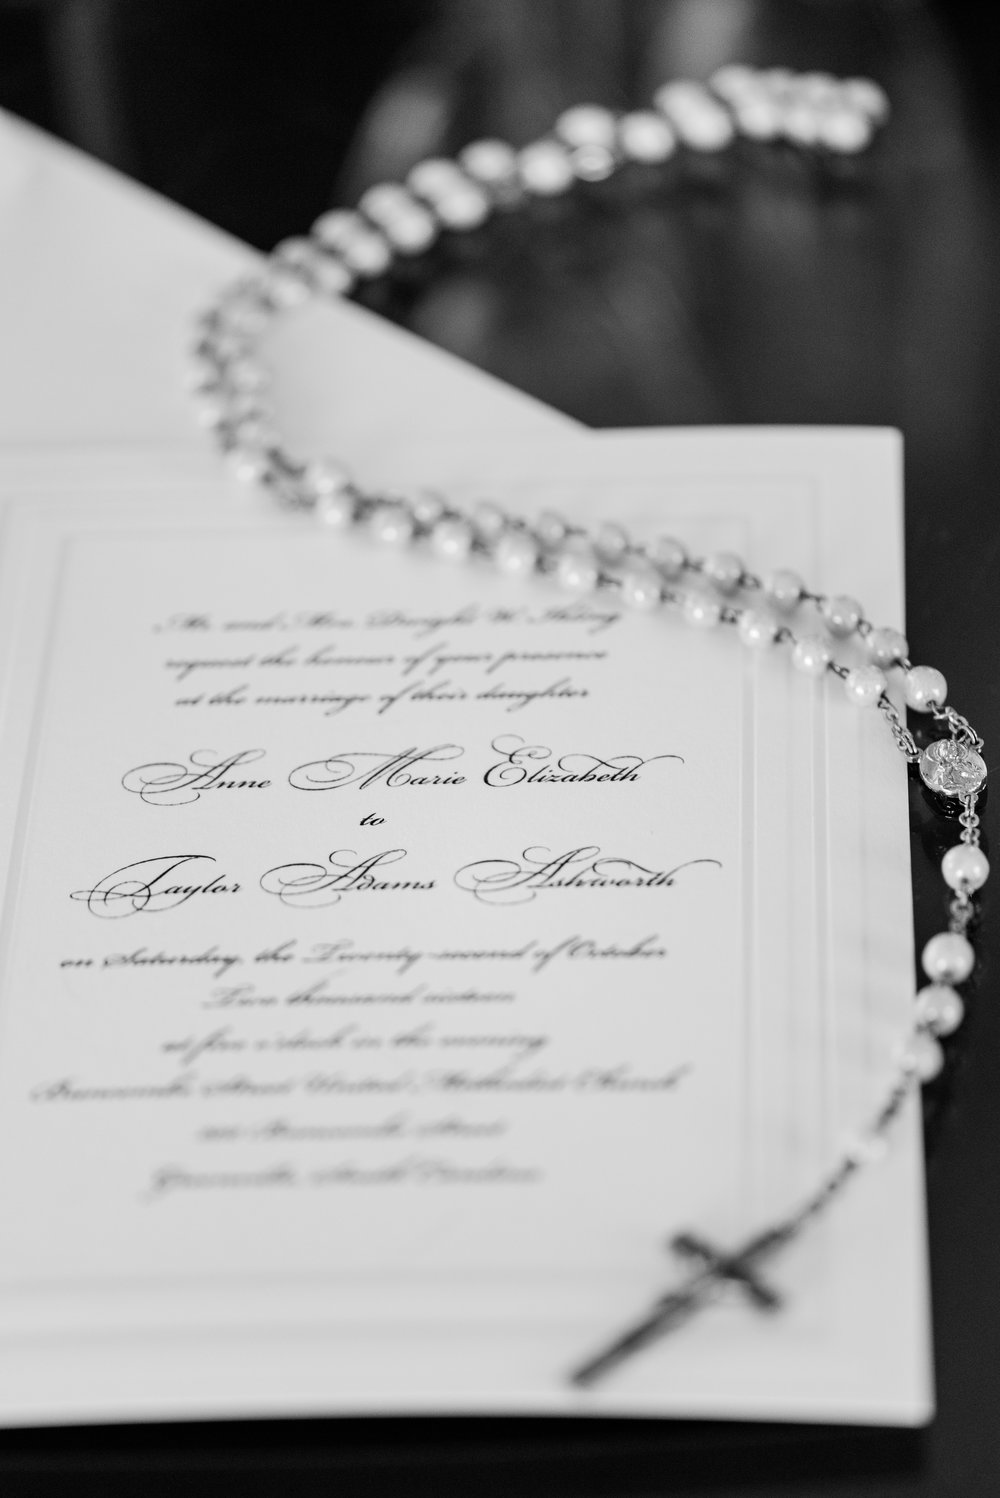 Wedding Invitation + Bridal Rosary - A Black Tie, South Carolina Commerce Club Wedding